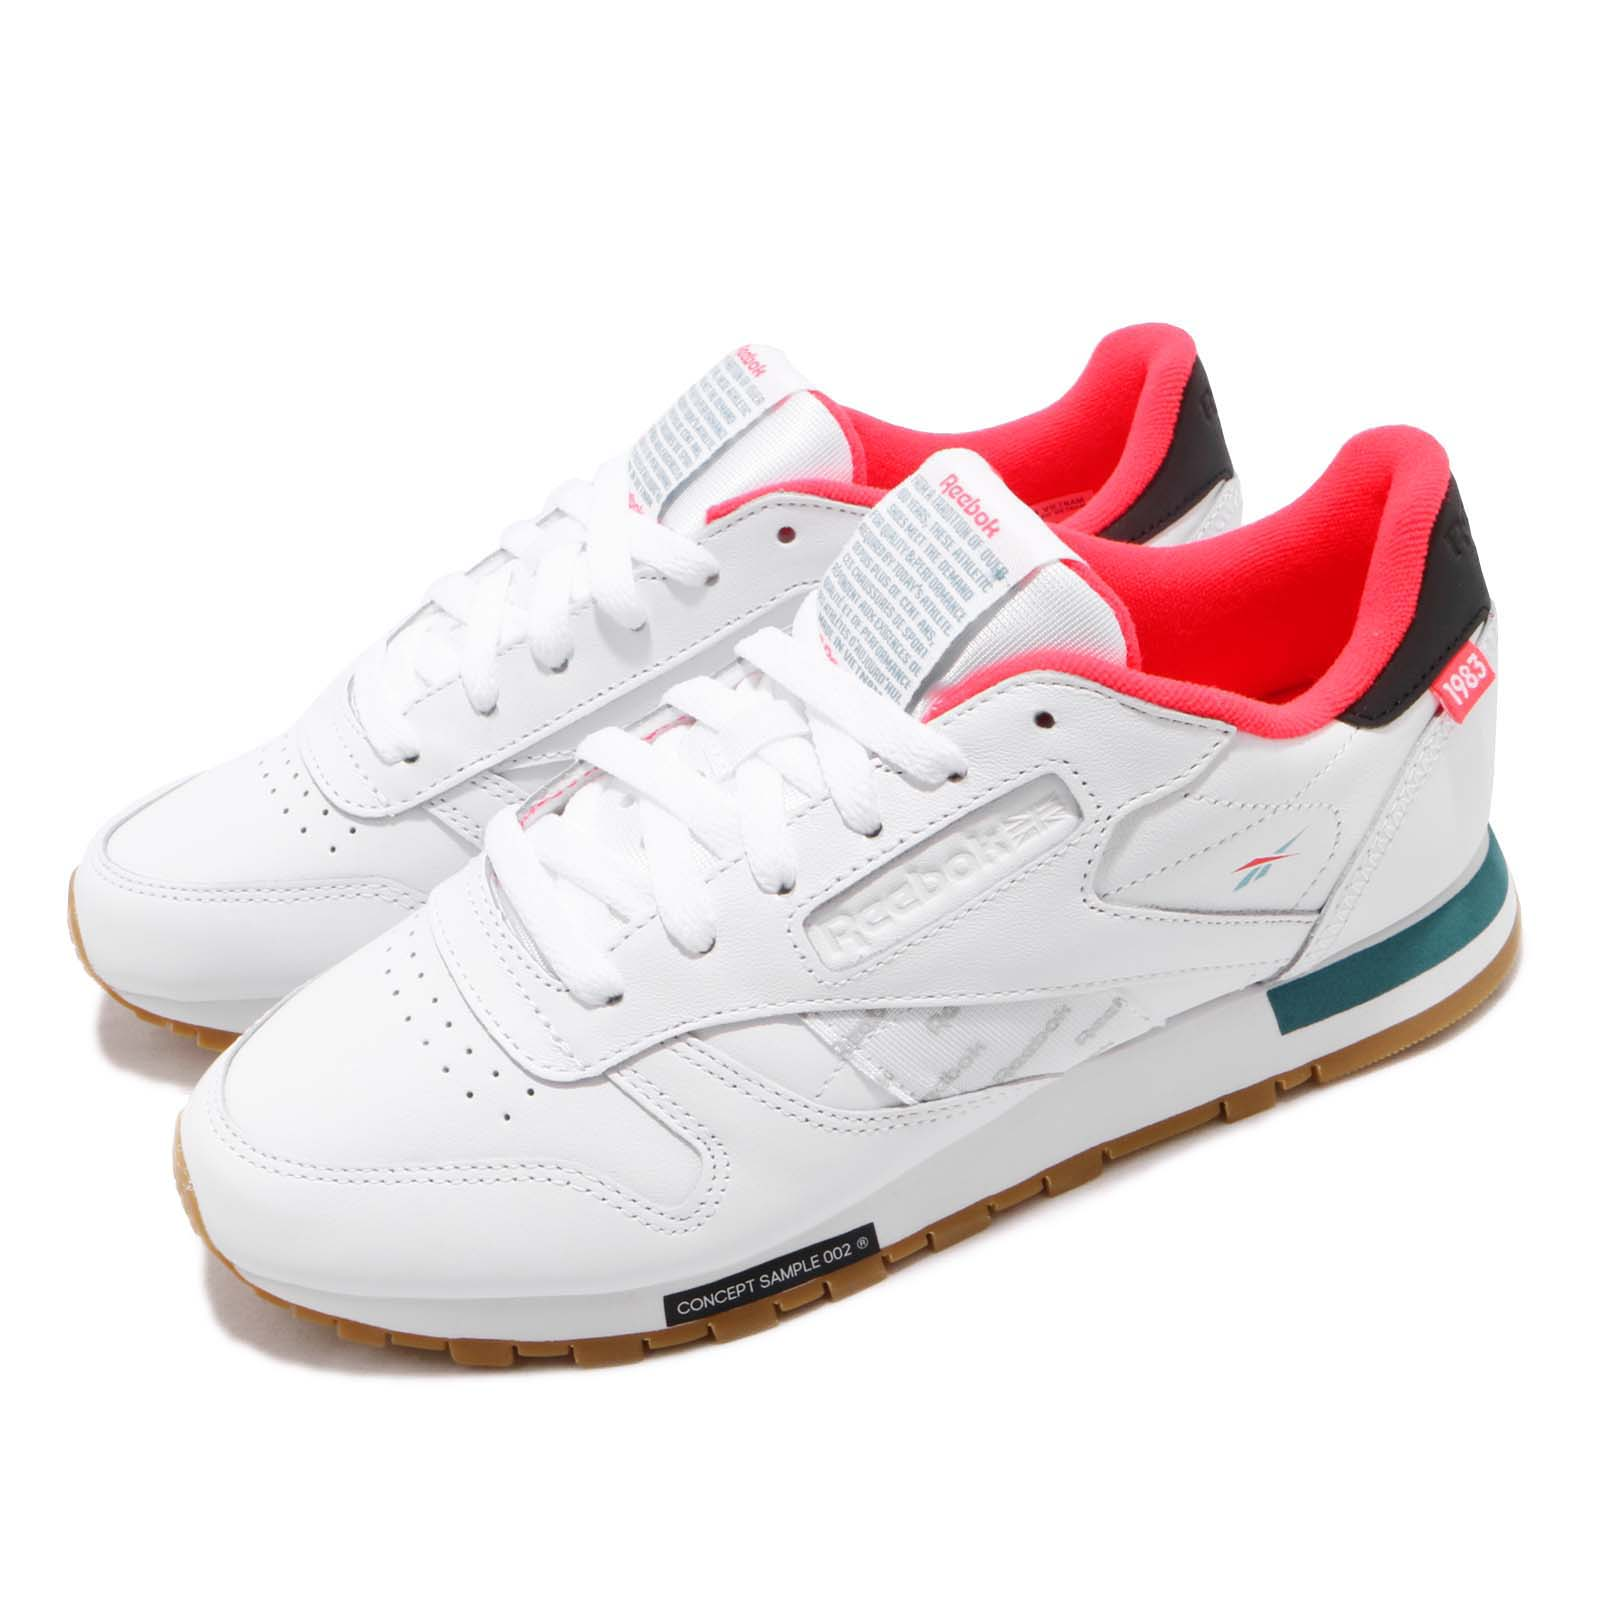 89794ed484e4aa Details about Reebok Classic Leather Altered White Red Mist Gum Women Shoes  Sneakers DV5238